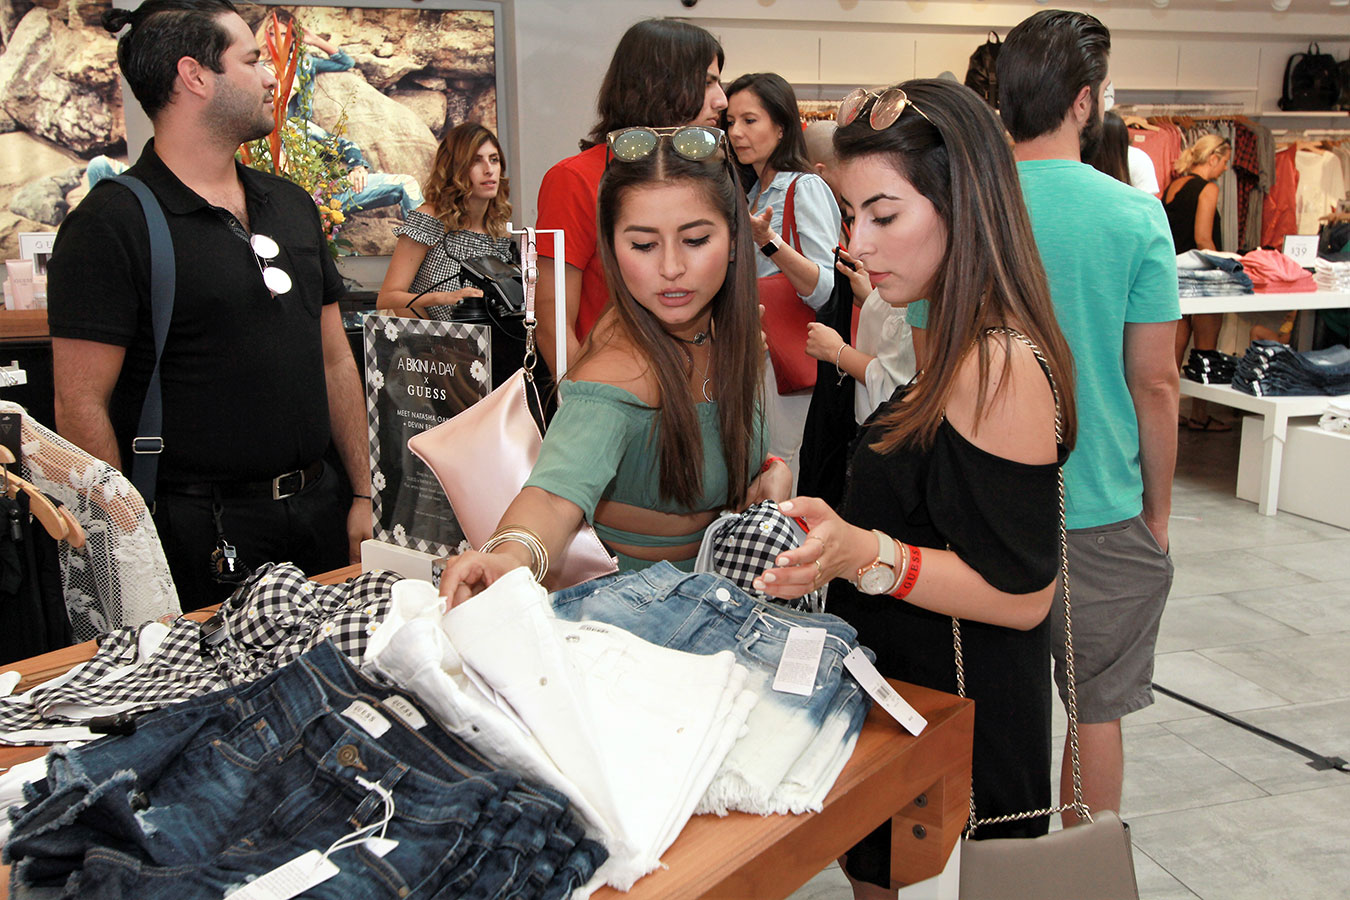 Guests shopped the GUESS summer apparel collections at the GUESS Lincoln Road in-store A Bikini A Day event